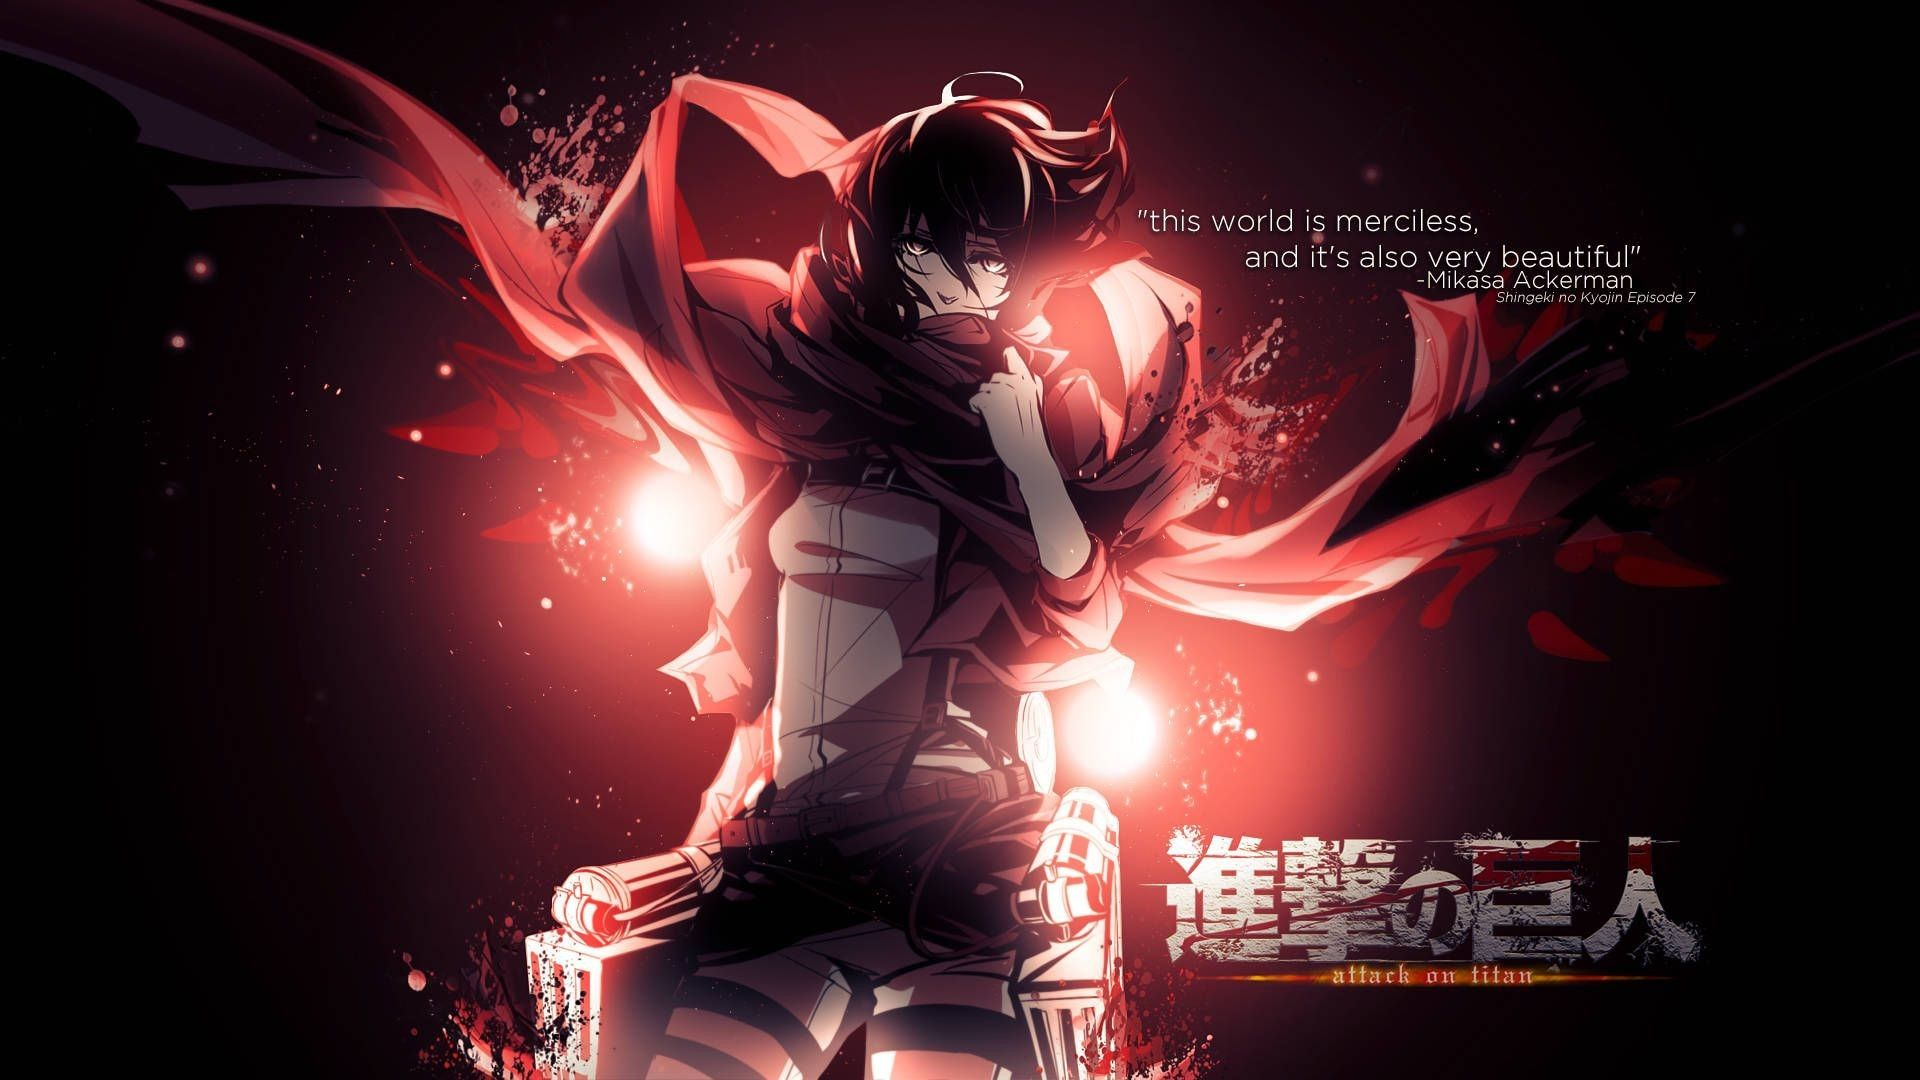 Res 1920x1080 Cool Anime Wallpaper Collection For Free Download In 2020 Attack On Titan Anime Wallpaper Cool Anime Wallpapers